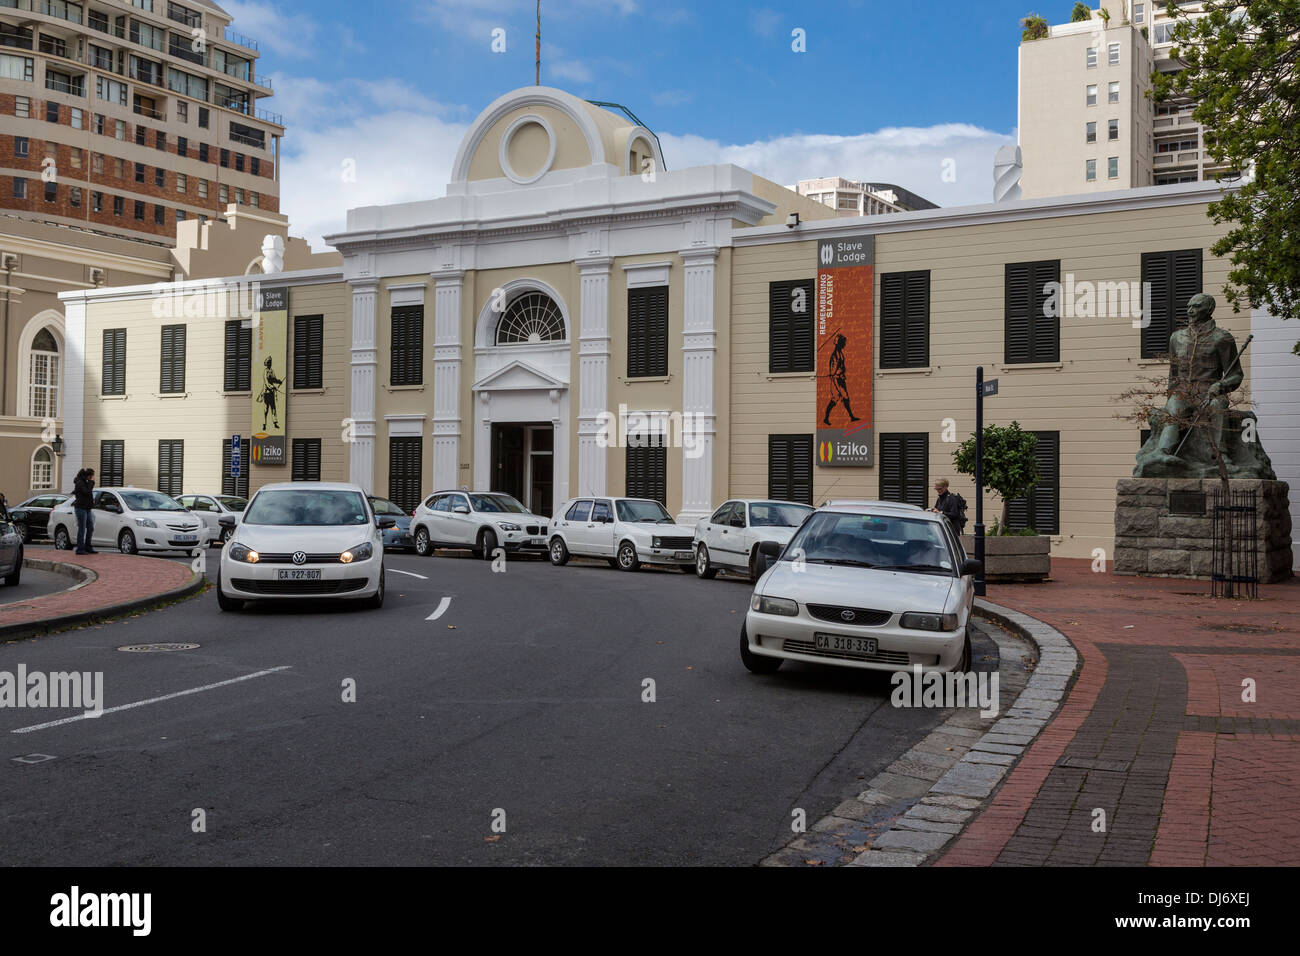 South Africa, Cape Town. Iziko Slave Lodge, formerly Government Office Building, Old Supreme Court. Statue of Jan Smuts, right. - Stock Image